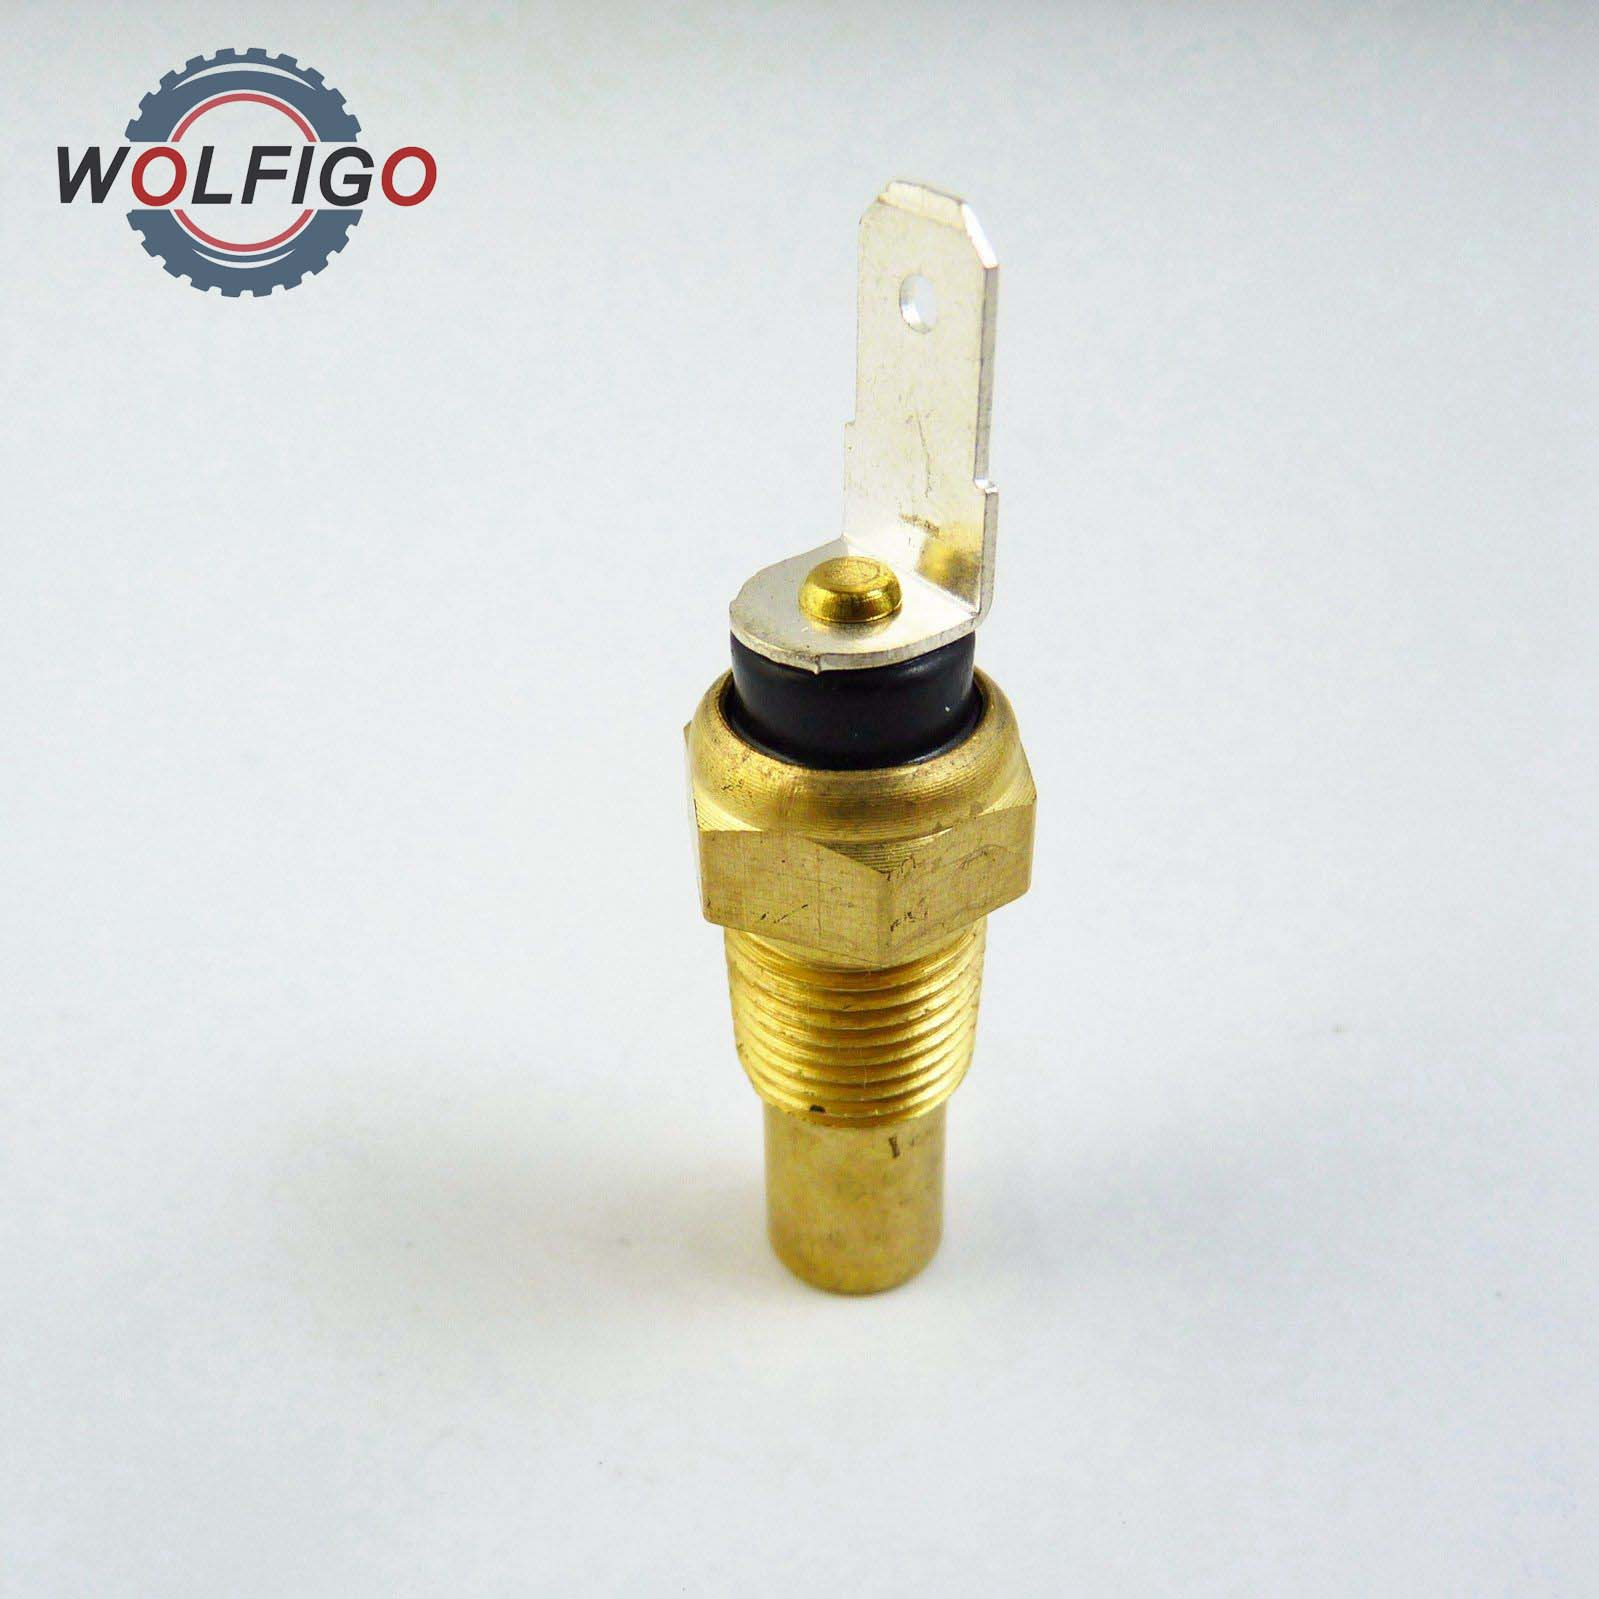 Wolfigo Engine Coolant Temperature Sensor 4671065 Md091056 For Acura 1988 Ford F 250 7 3 Temp Hyundai Accent New In From Automobiles Motorcycles On